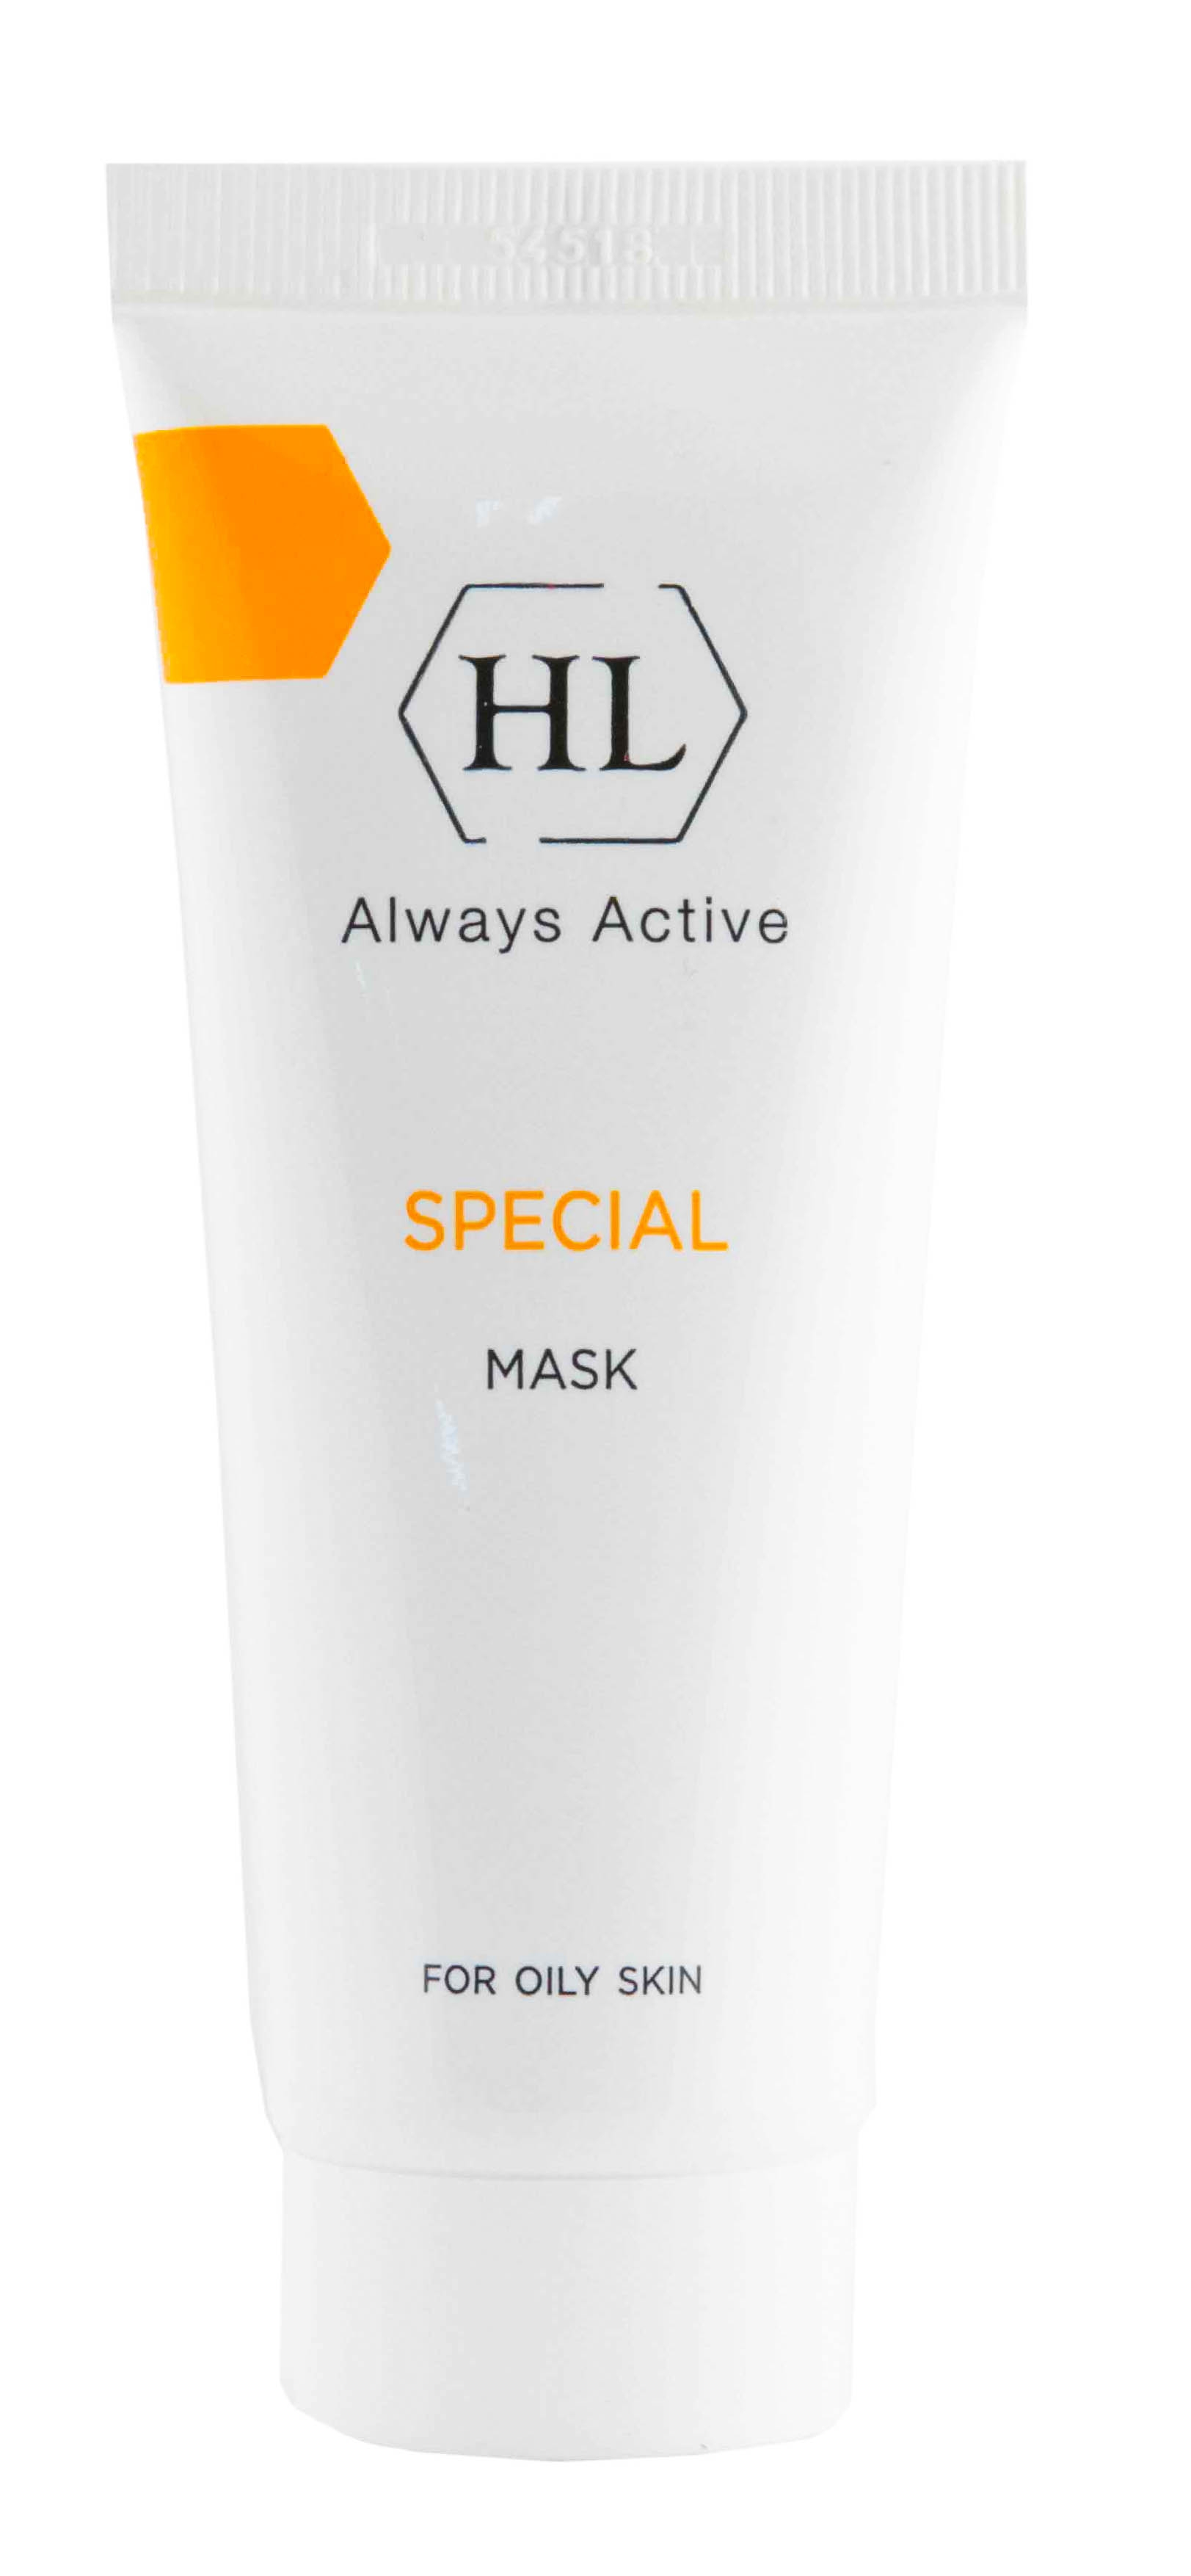 Holy Land Маска Special Mask Сокращающая, 70 мл маска для лица holy land renewing mask renew formula 50 мл нежная сокращающая для лифтинга